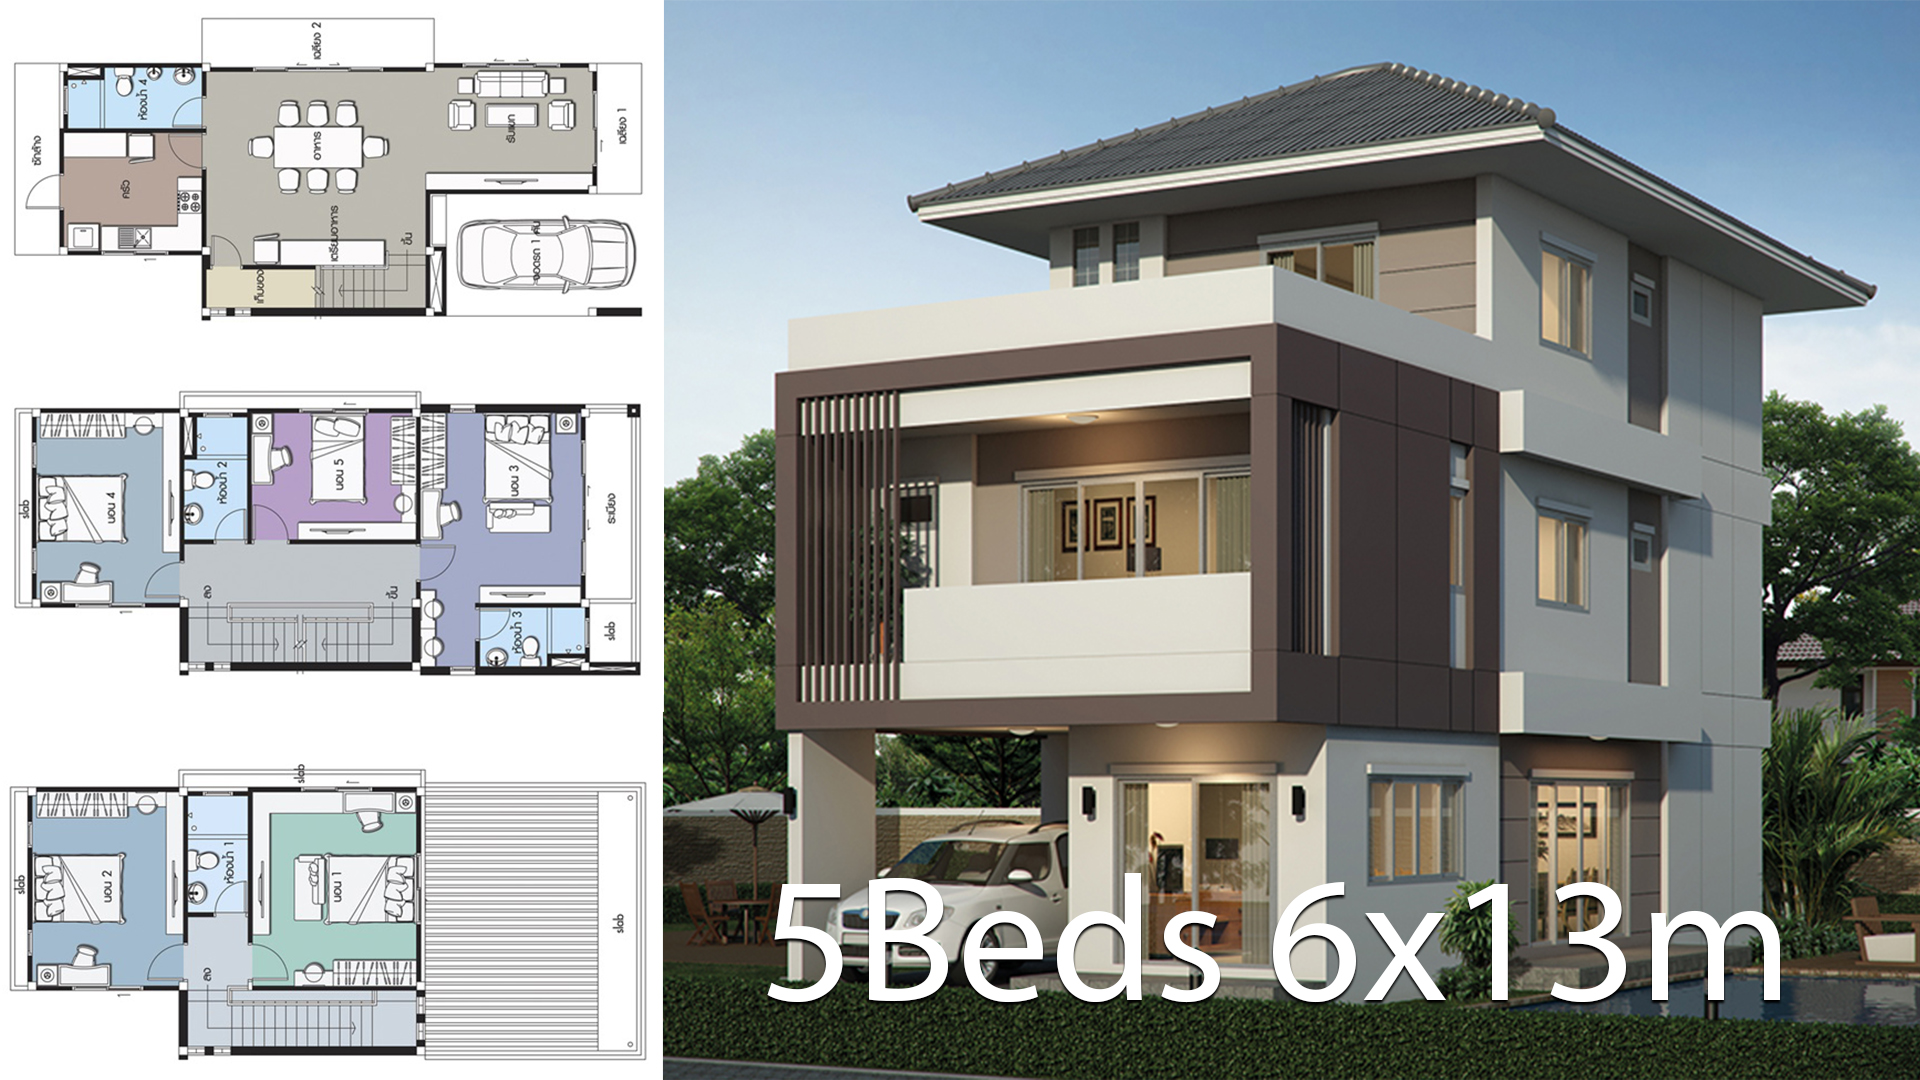 House design plan 6x13m with 5 bedrooms